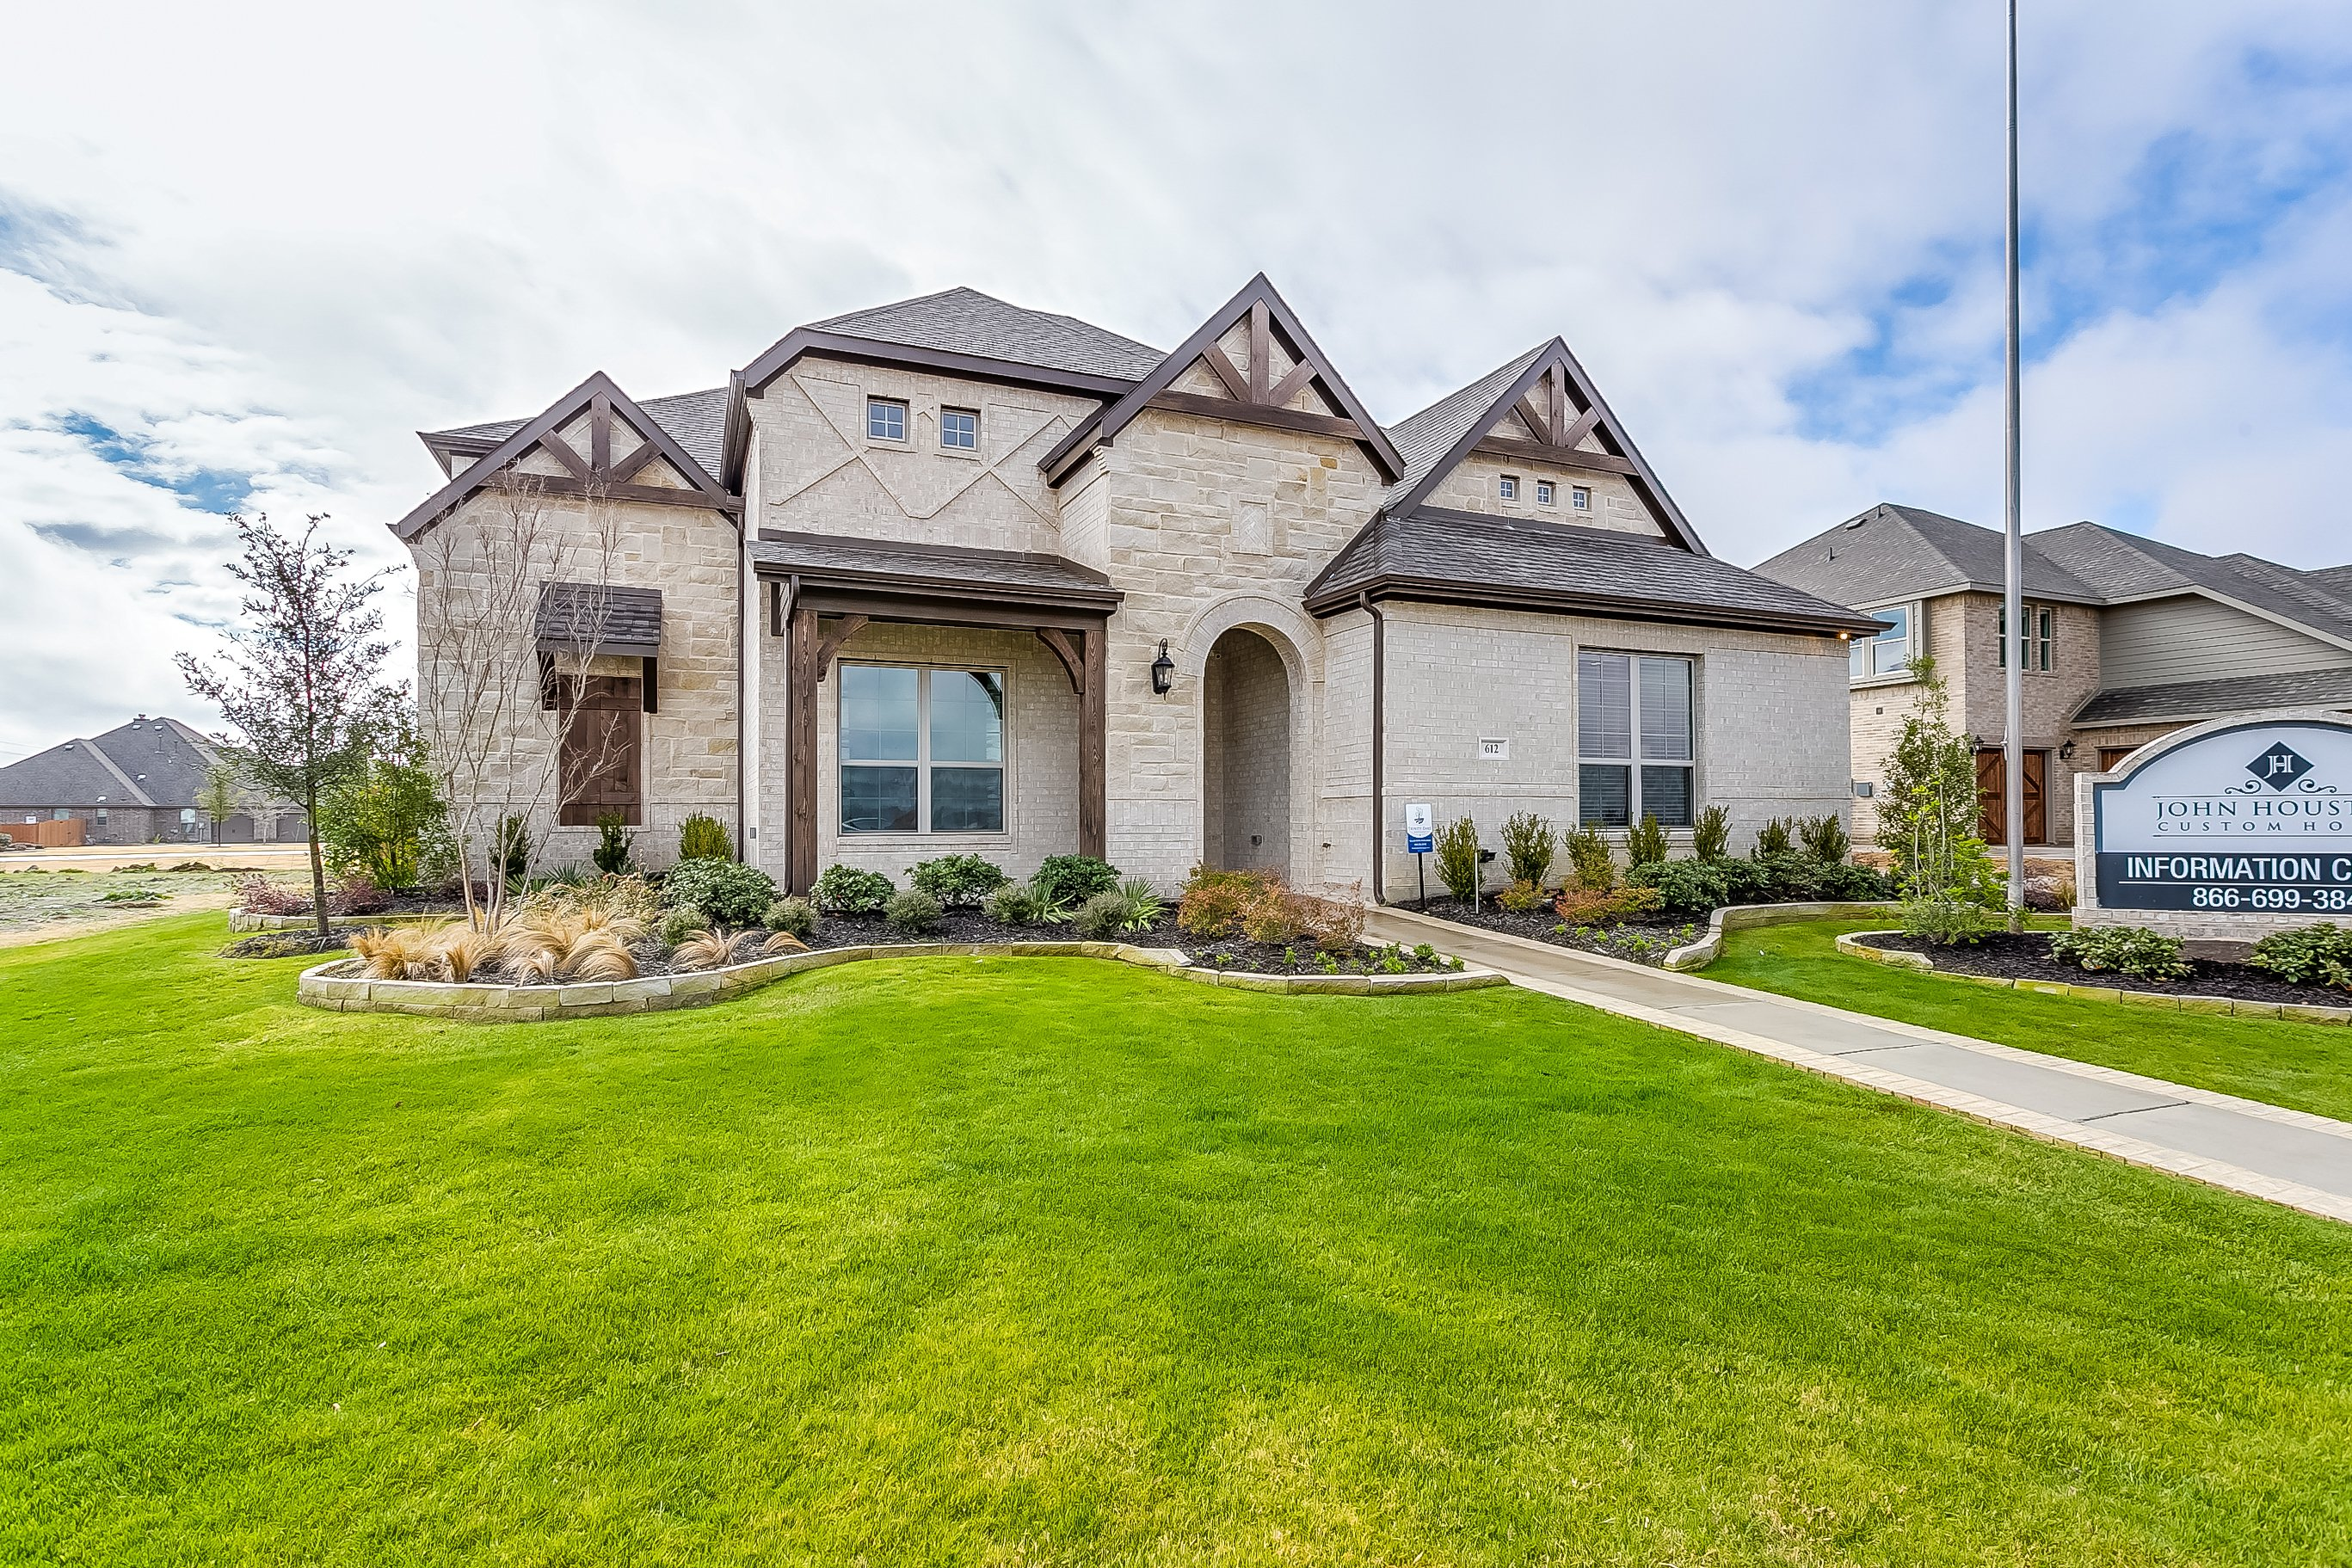 Estates at North Grove, Waxahachie, new homes for sale, waxahachie home builder, ellis county, model home, 3d gallery, 3d home tour, model home photos